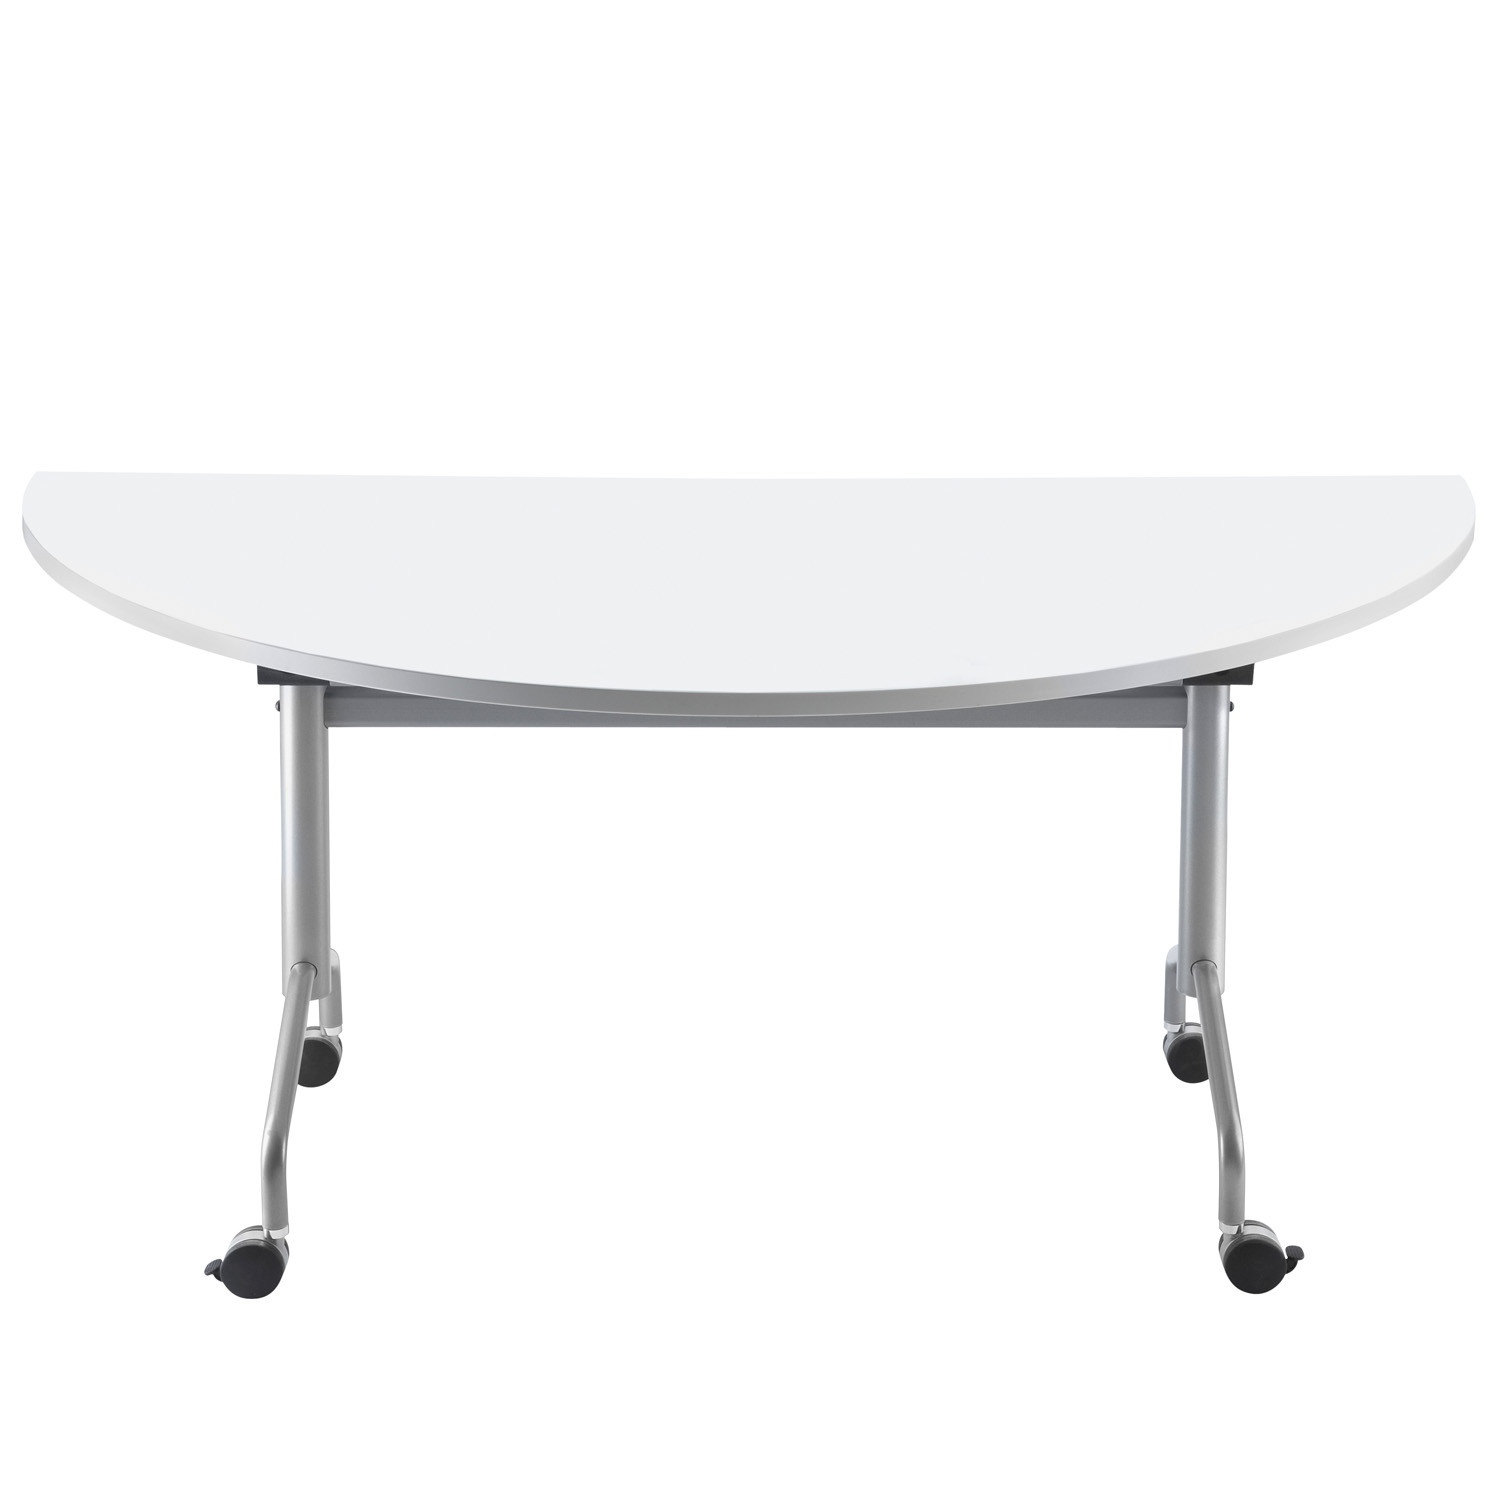 My Meeting Folding Table by Roger Webb Associates